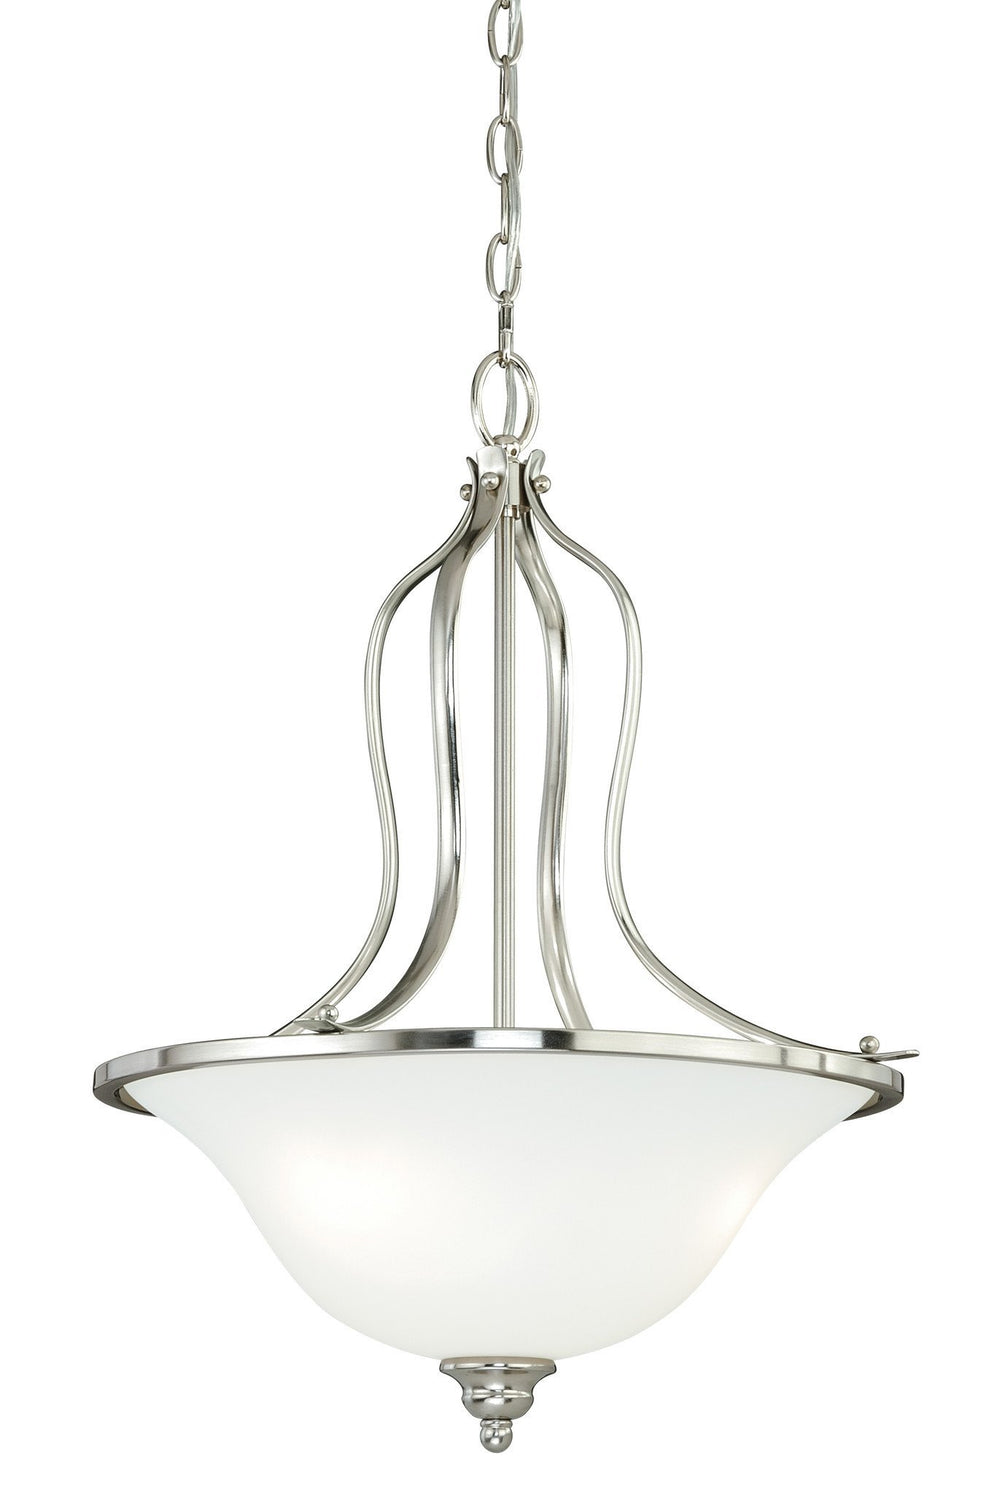 Vaxcel Darby 18 Inch Pendant Model: P0085